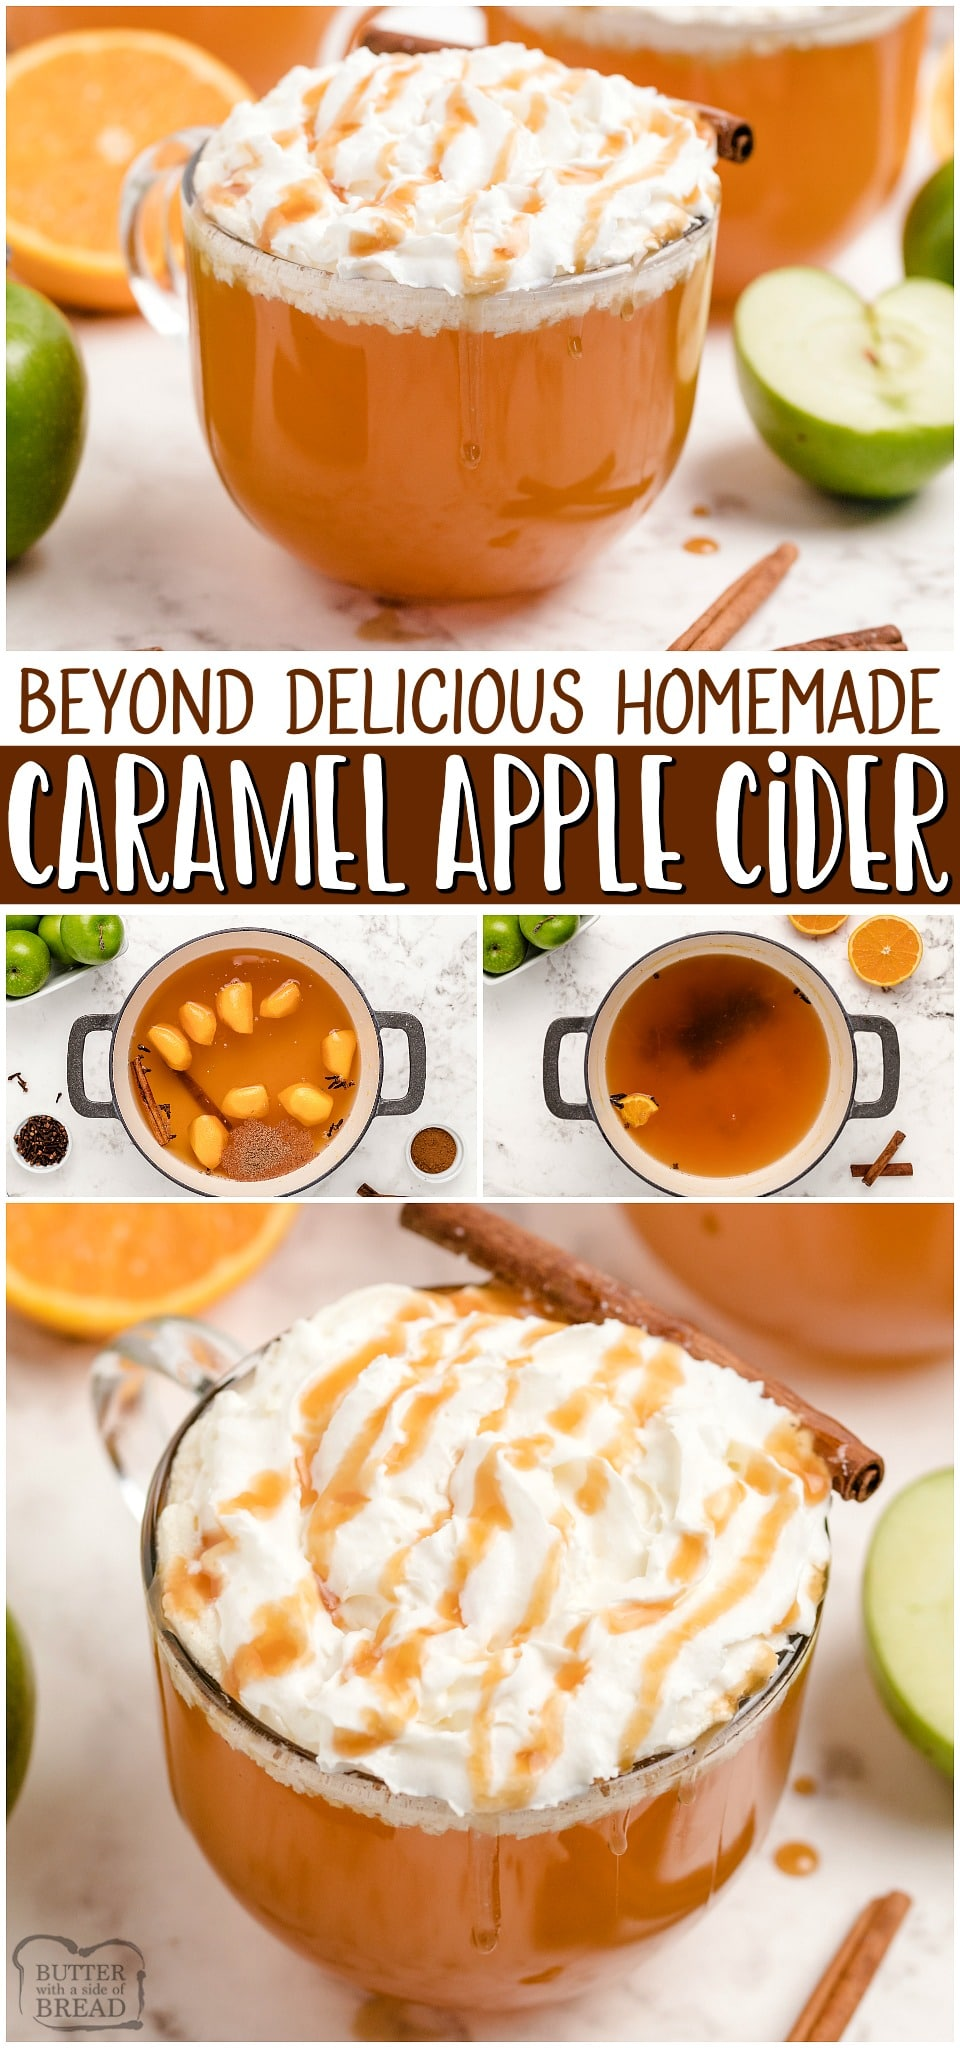 Caramel Apple Cider recipemade with apple juice, cinnamon, cloves & nutmeg! Spiced Apple Cider topped with fresh cream and a drizzle of caramel for a hot & delicious Fall treat!